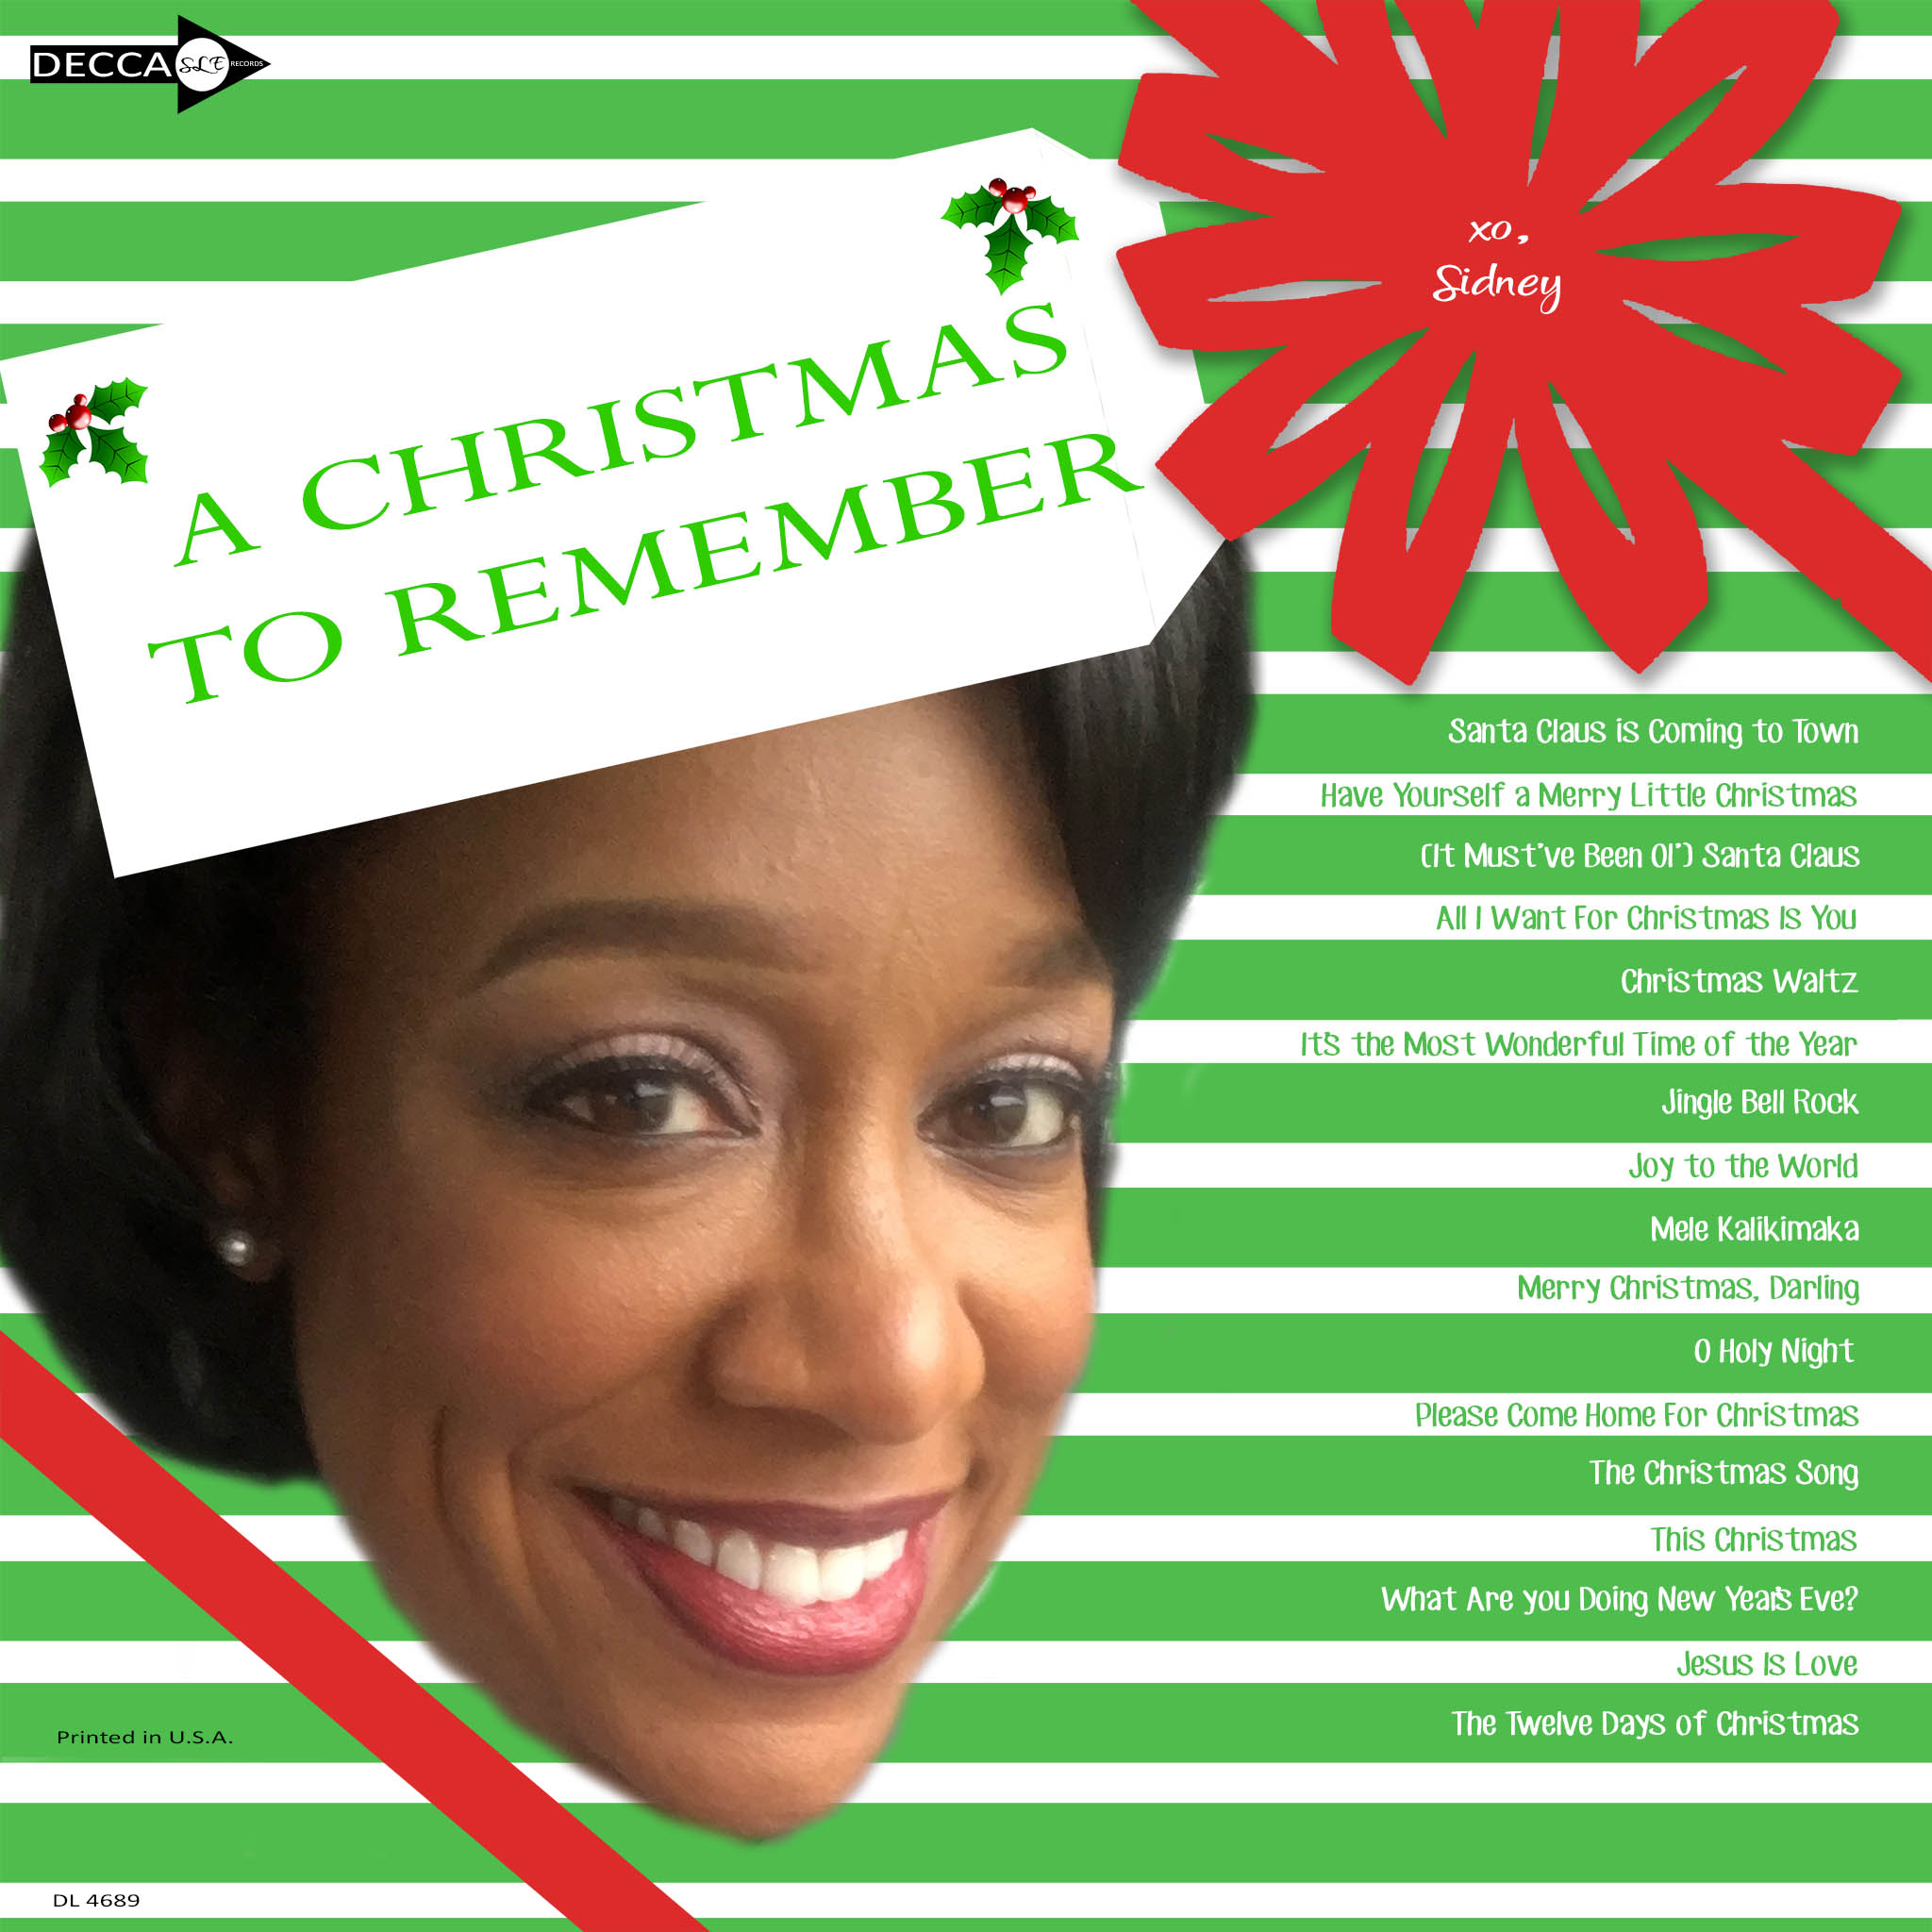 A Christmas to Remember Track Please e Home for Christmas